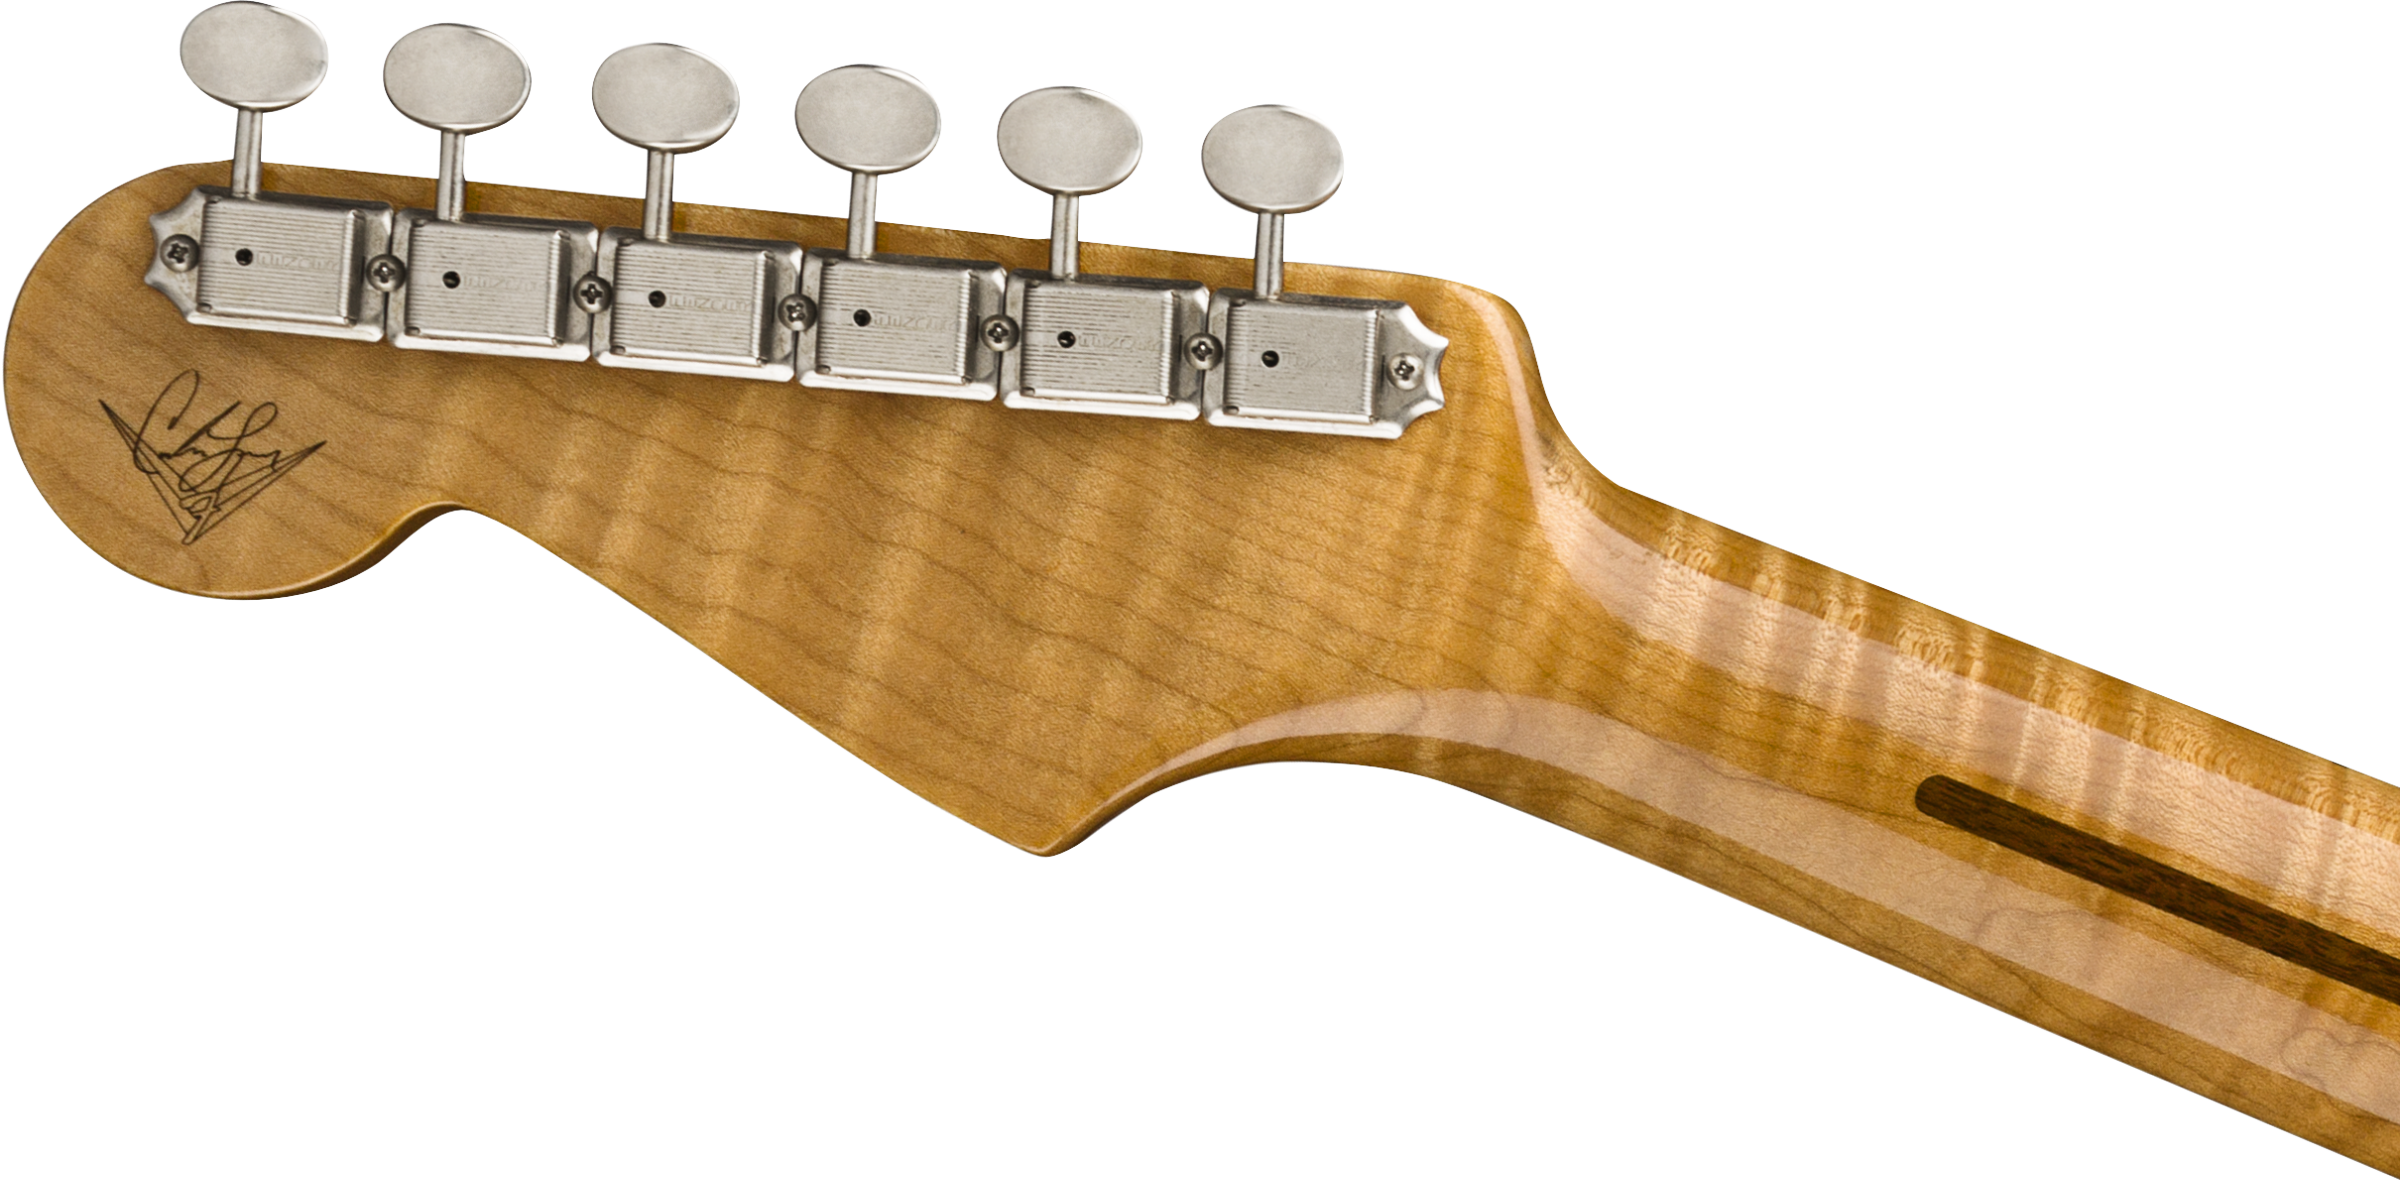 Eric Johnson Strat Wiring Diagram from www.fmicassets.com